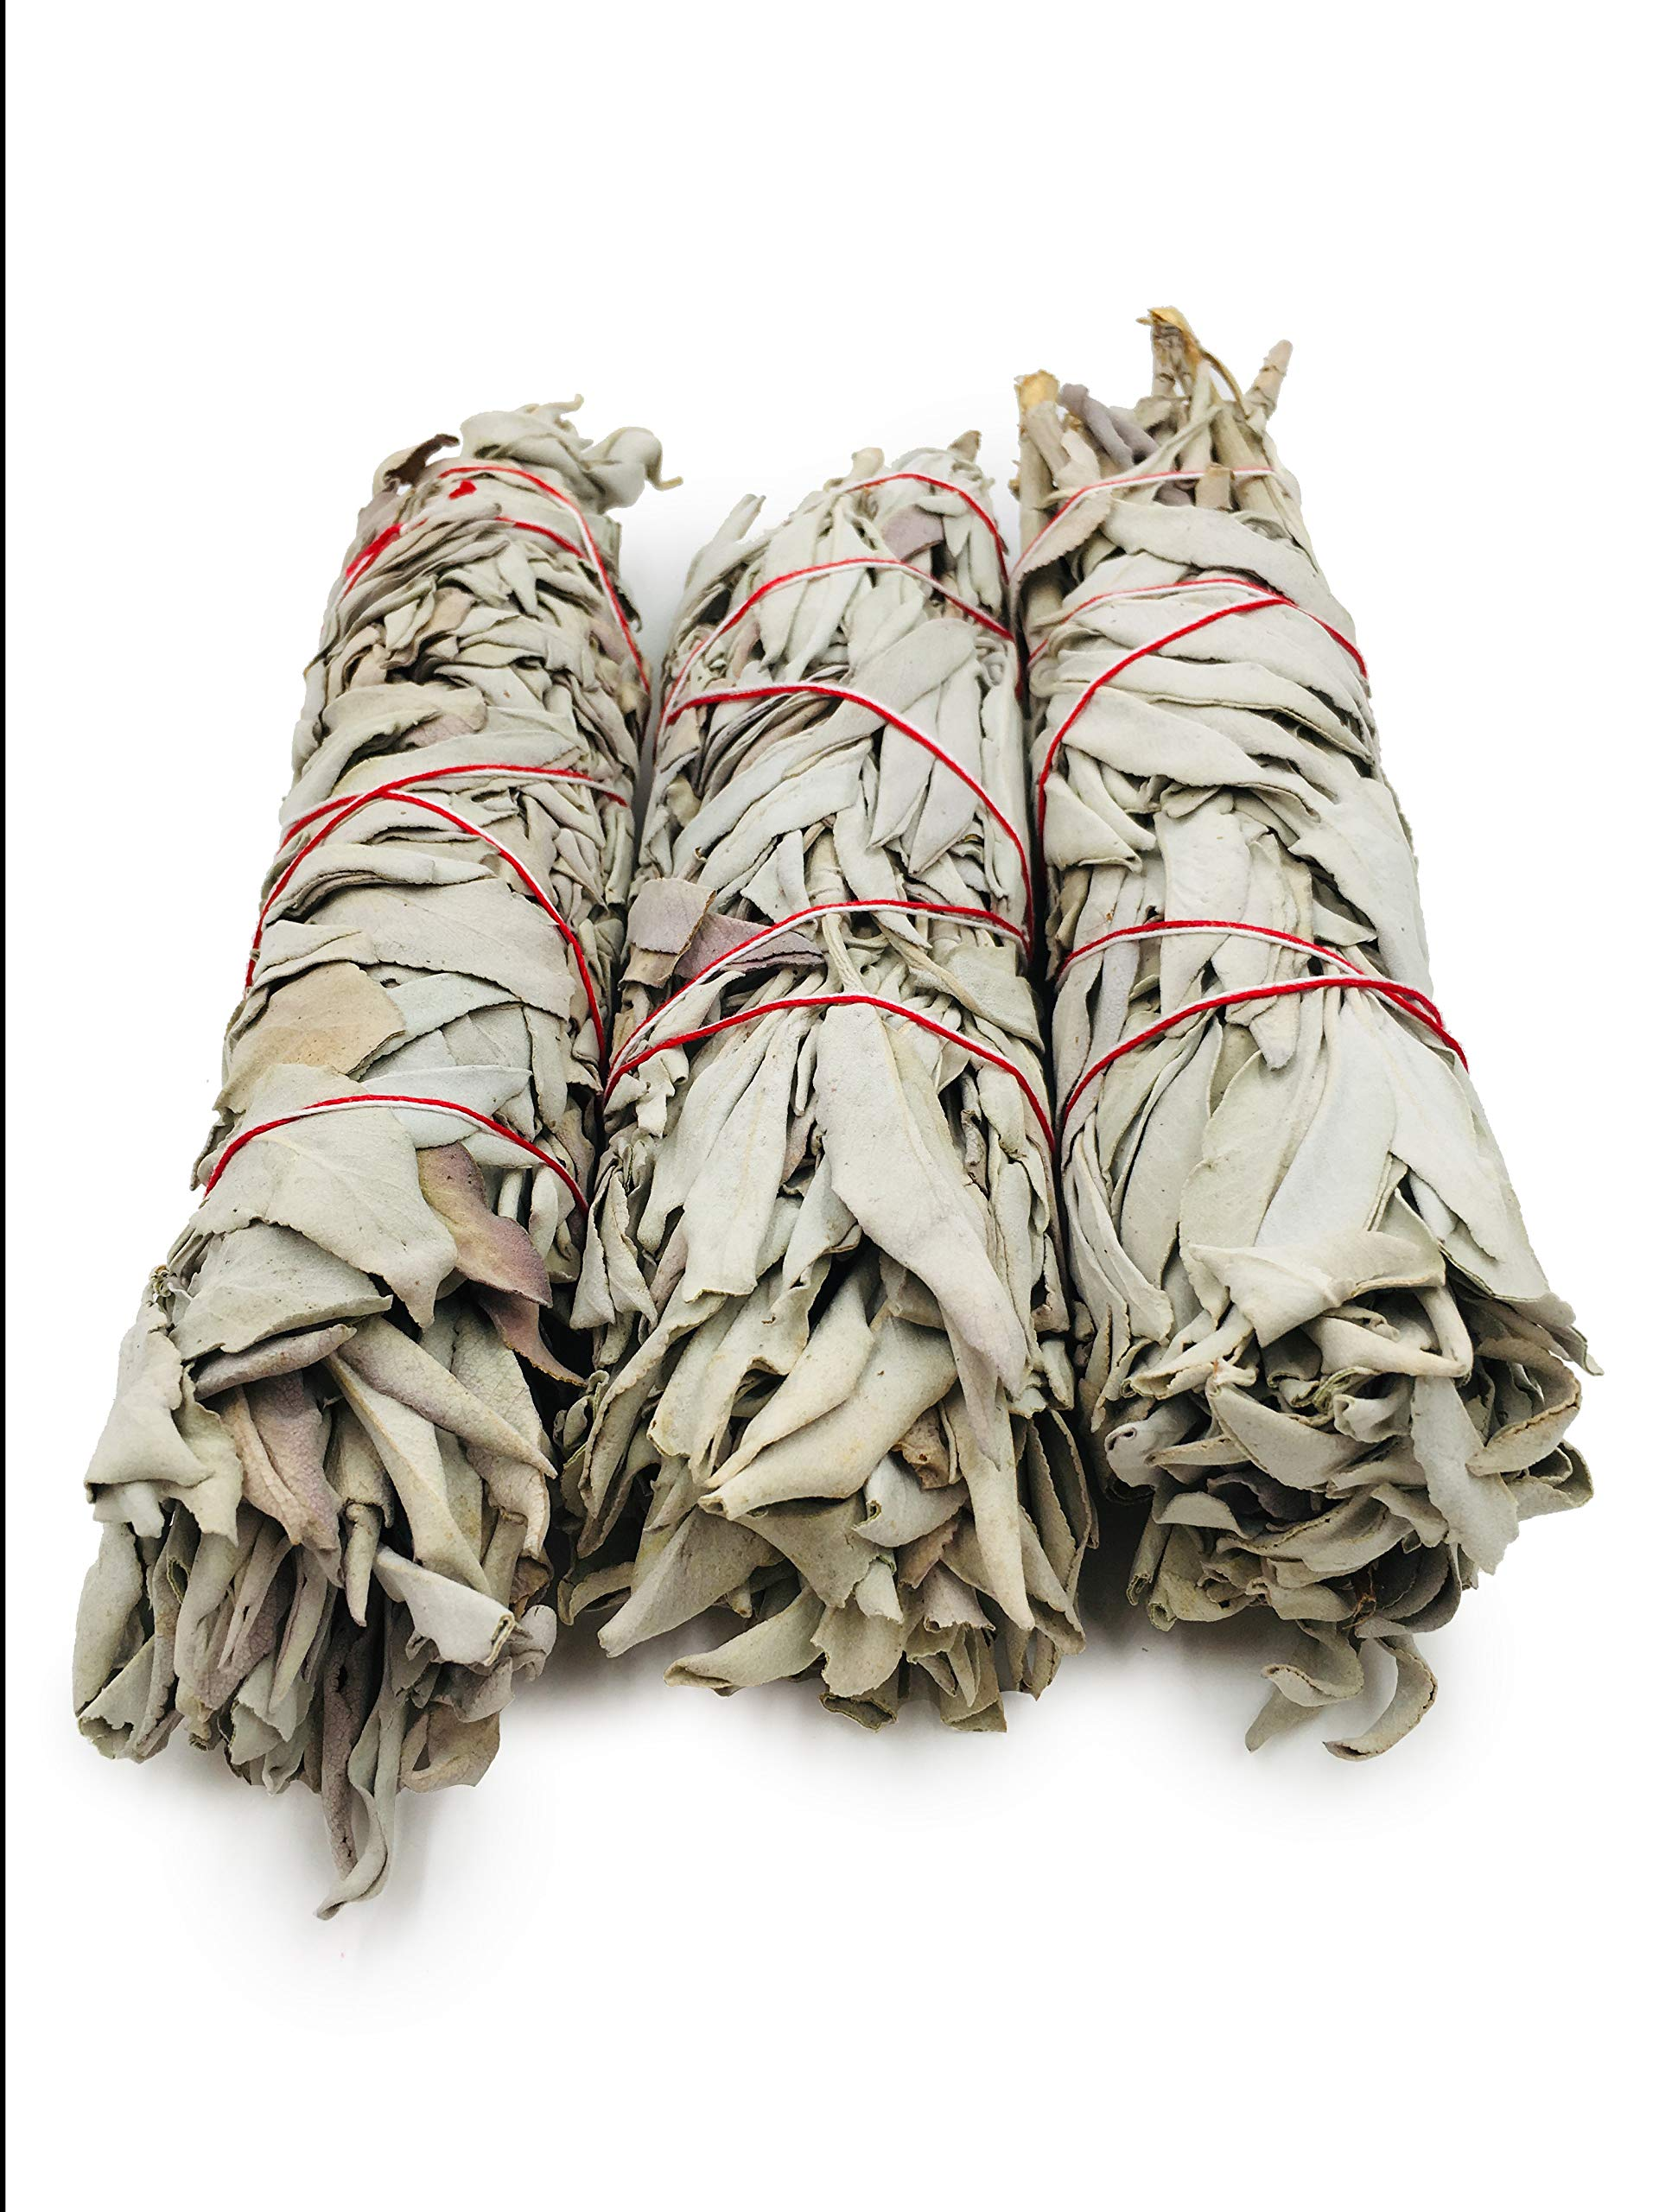 Alternative Imagination Premium, 7 Inch California White Sage Smudge Sticks. by Alternative Imagination (Image #2)